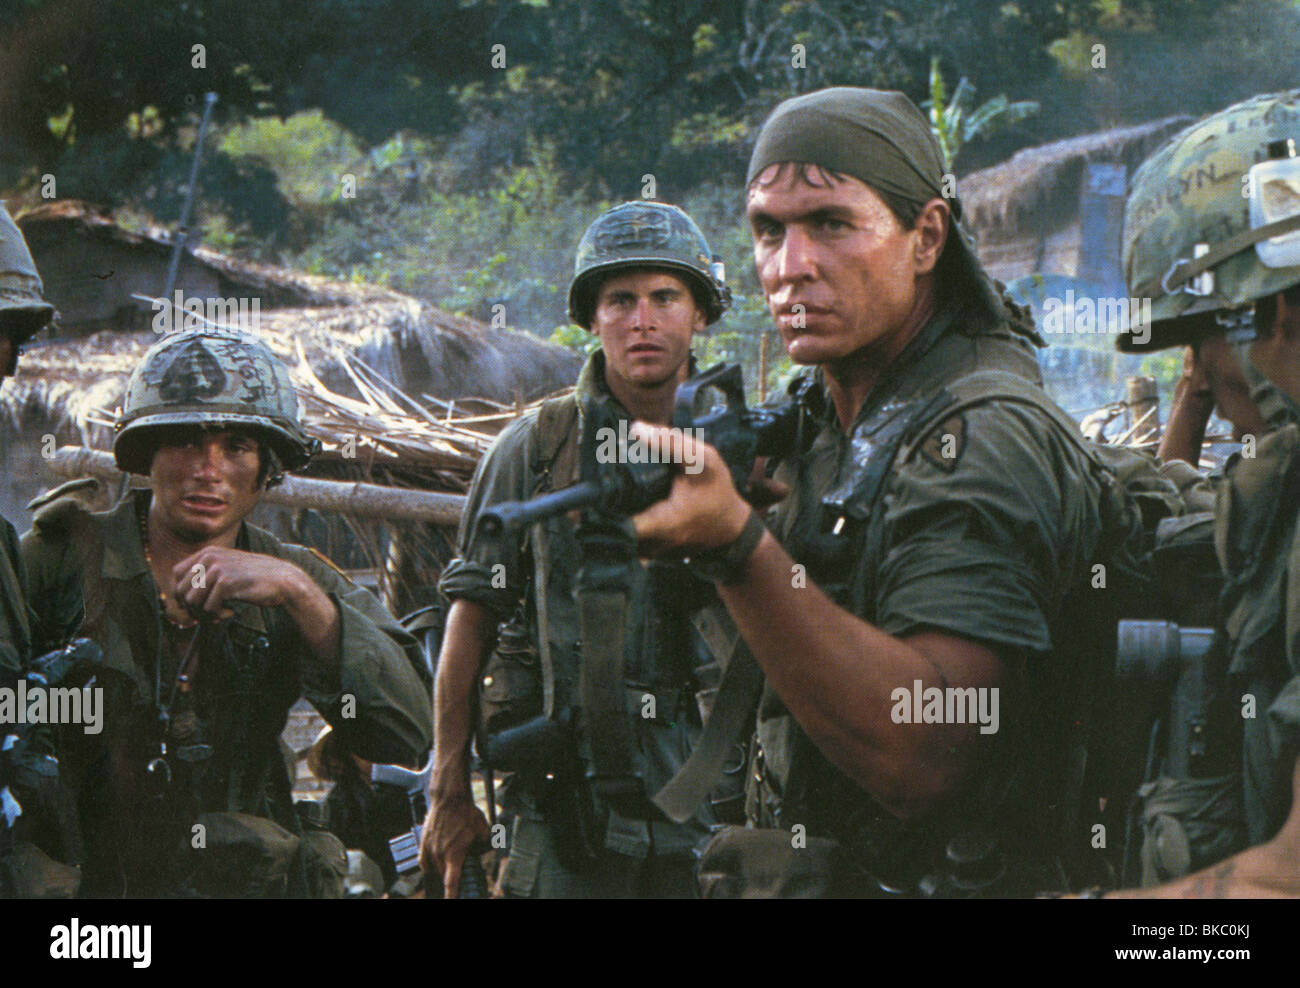 platoon film stock photos amp platoon film stock images alamy